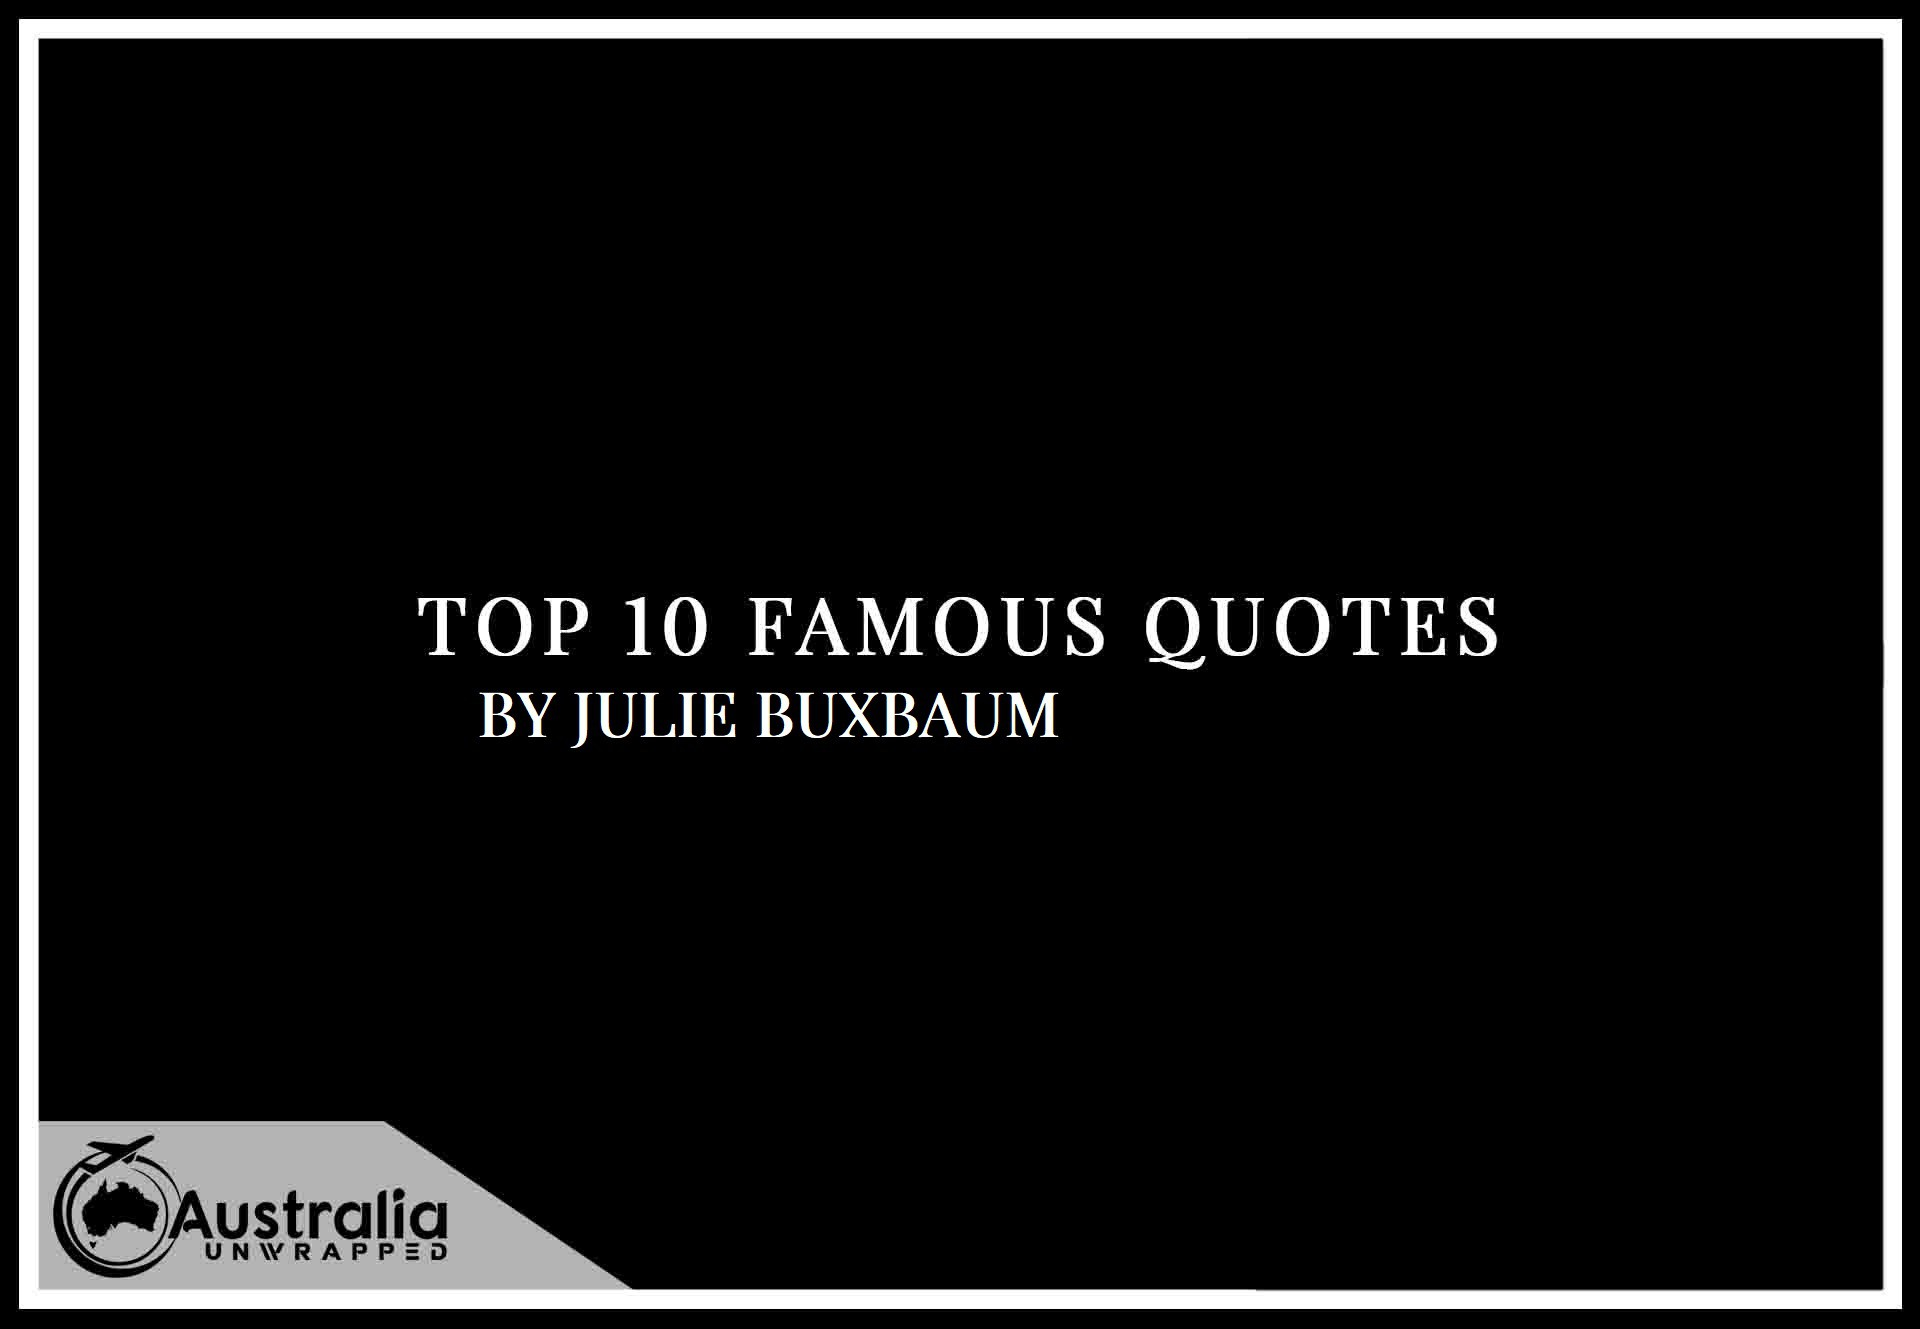 Top 10 Famous Quotes by Author Julie Buxbaum